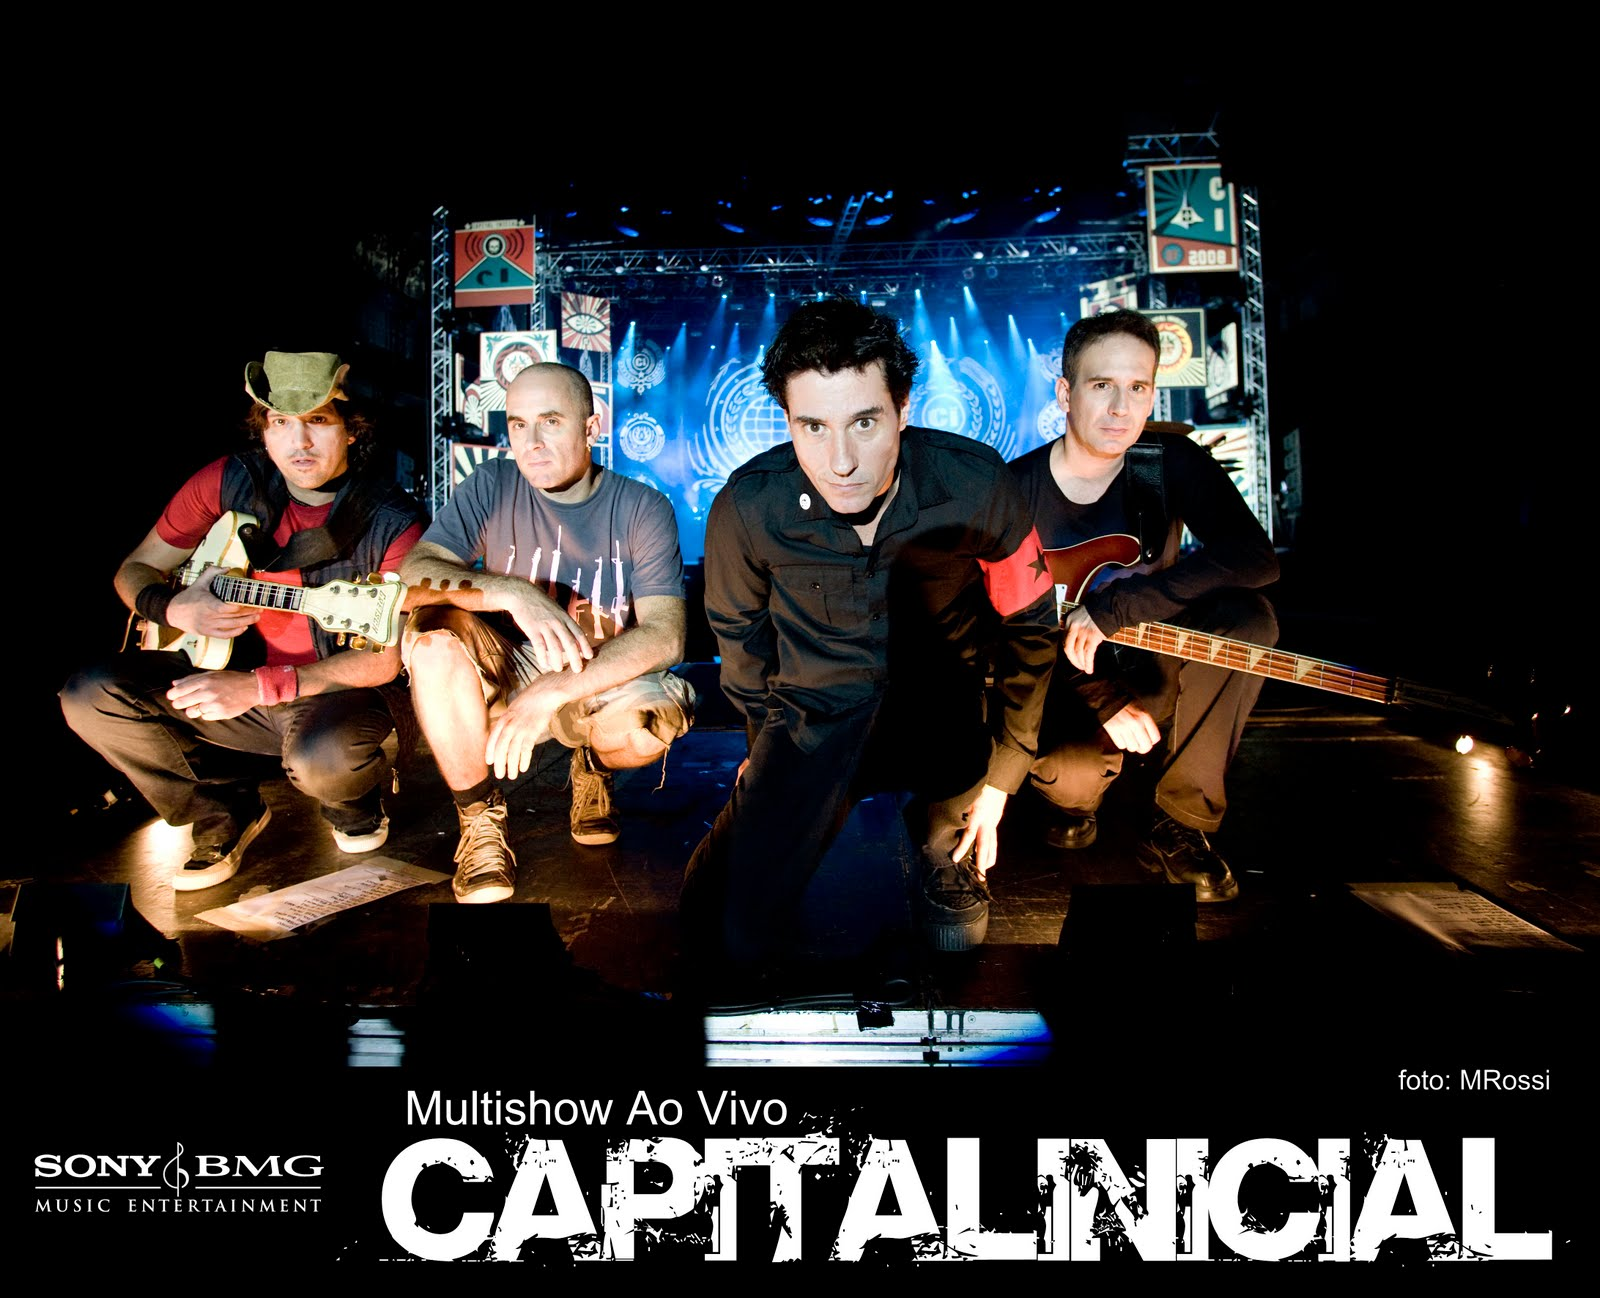 capital.inicial Tarde Demais – Capital Inicial – Mp3